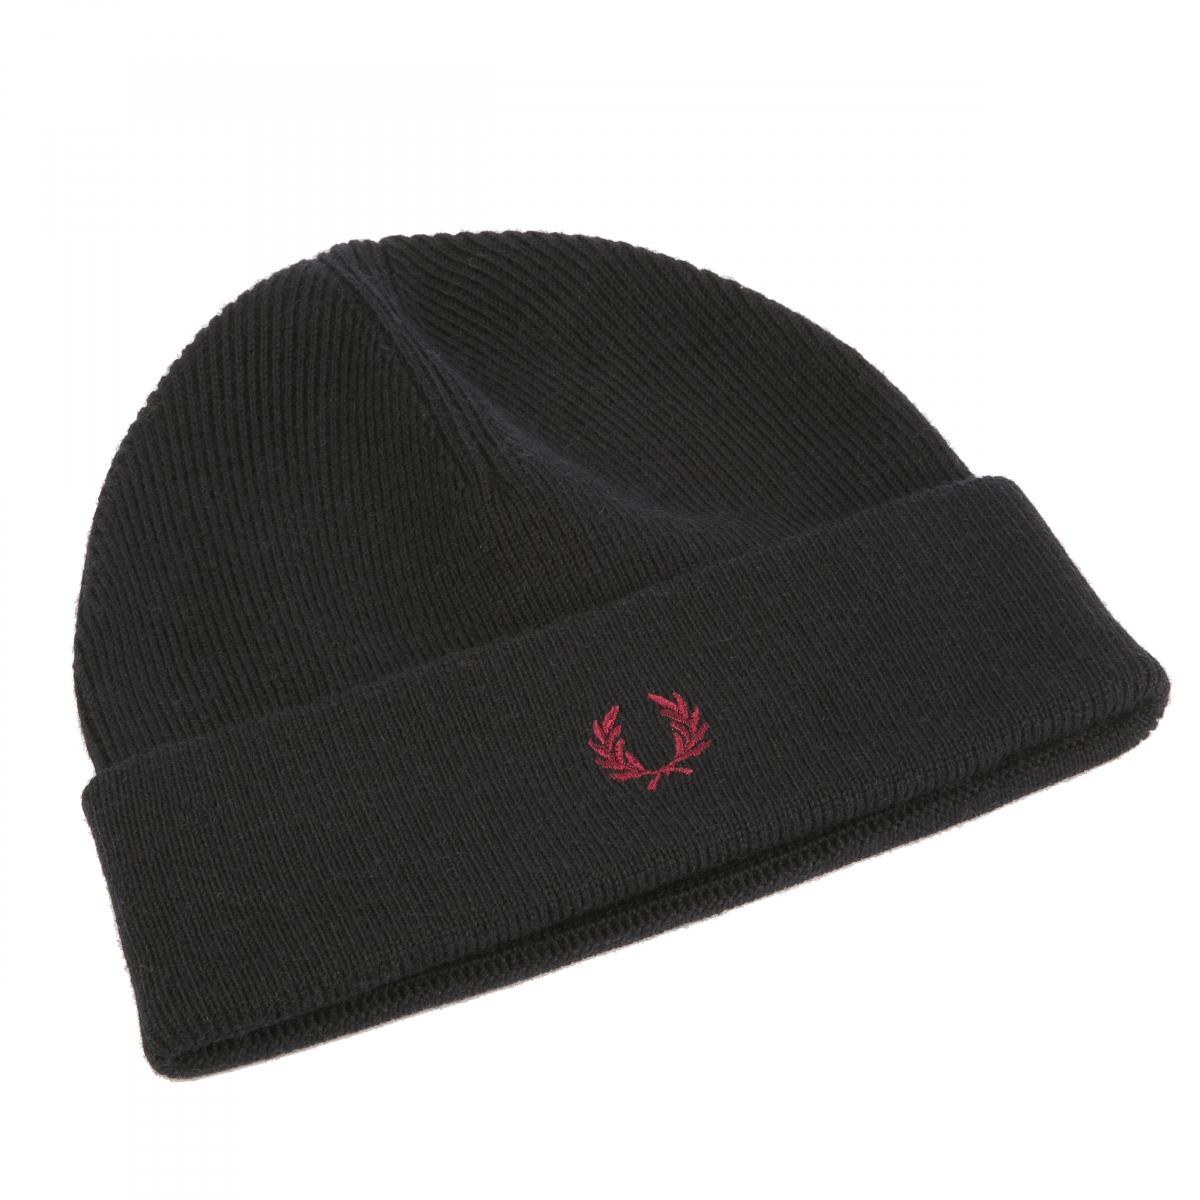 Bonnet laine noir - Fred Perry Fred Perry